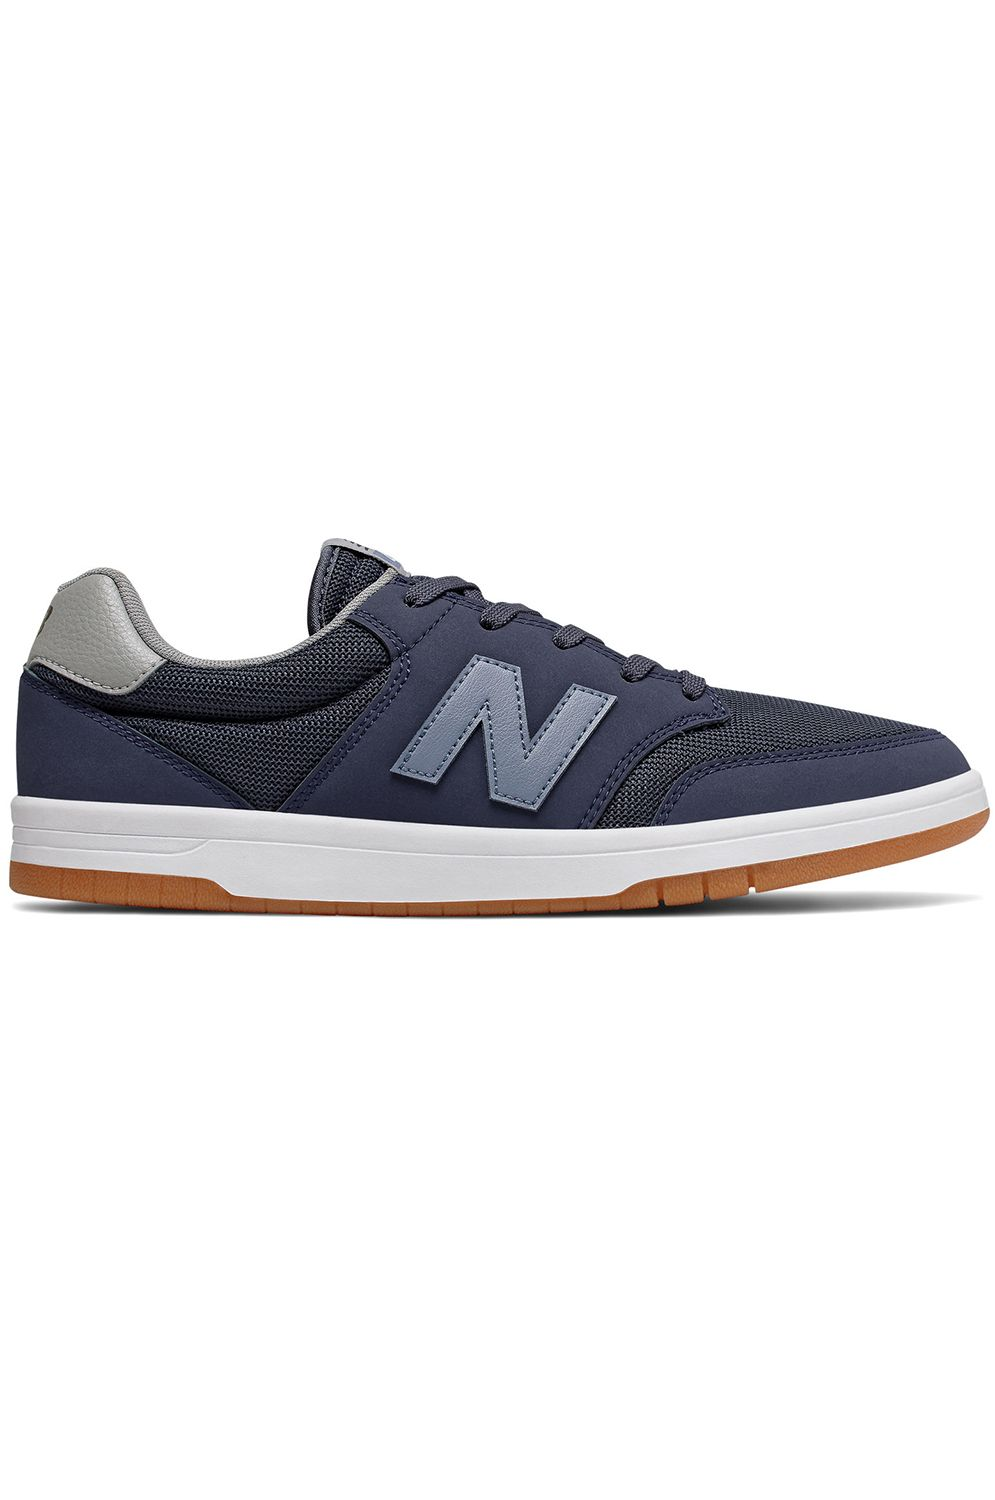 Tenis New Balance AM425 Navy/Grey